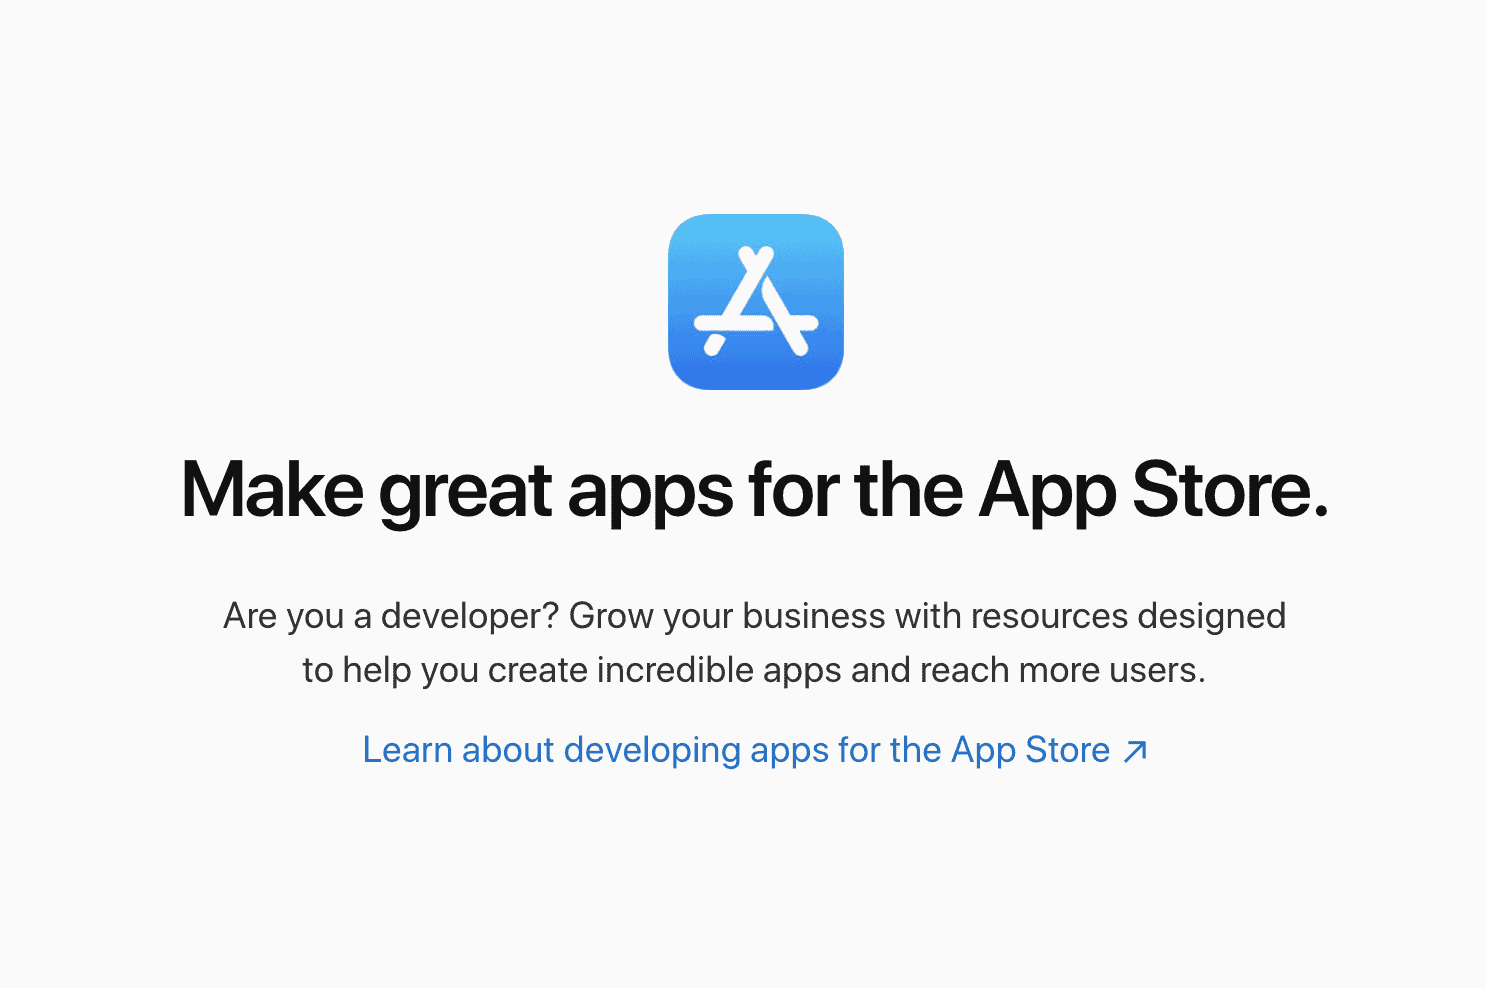 Make an App for Apple's App Store